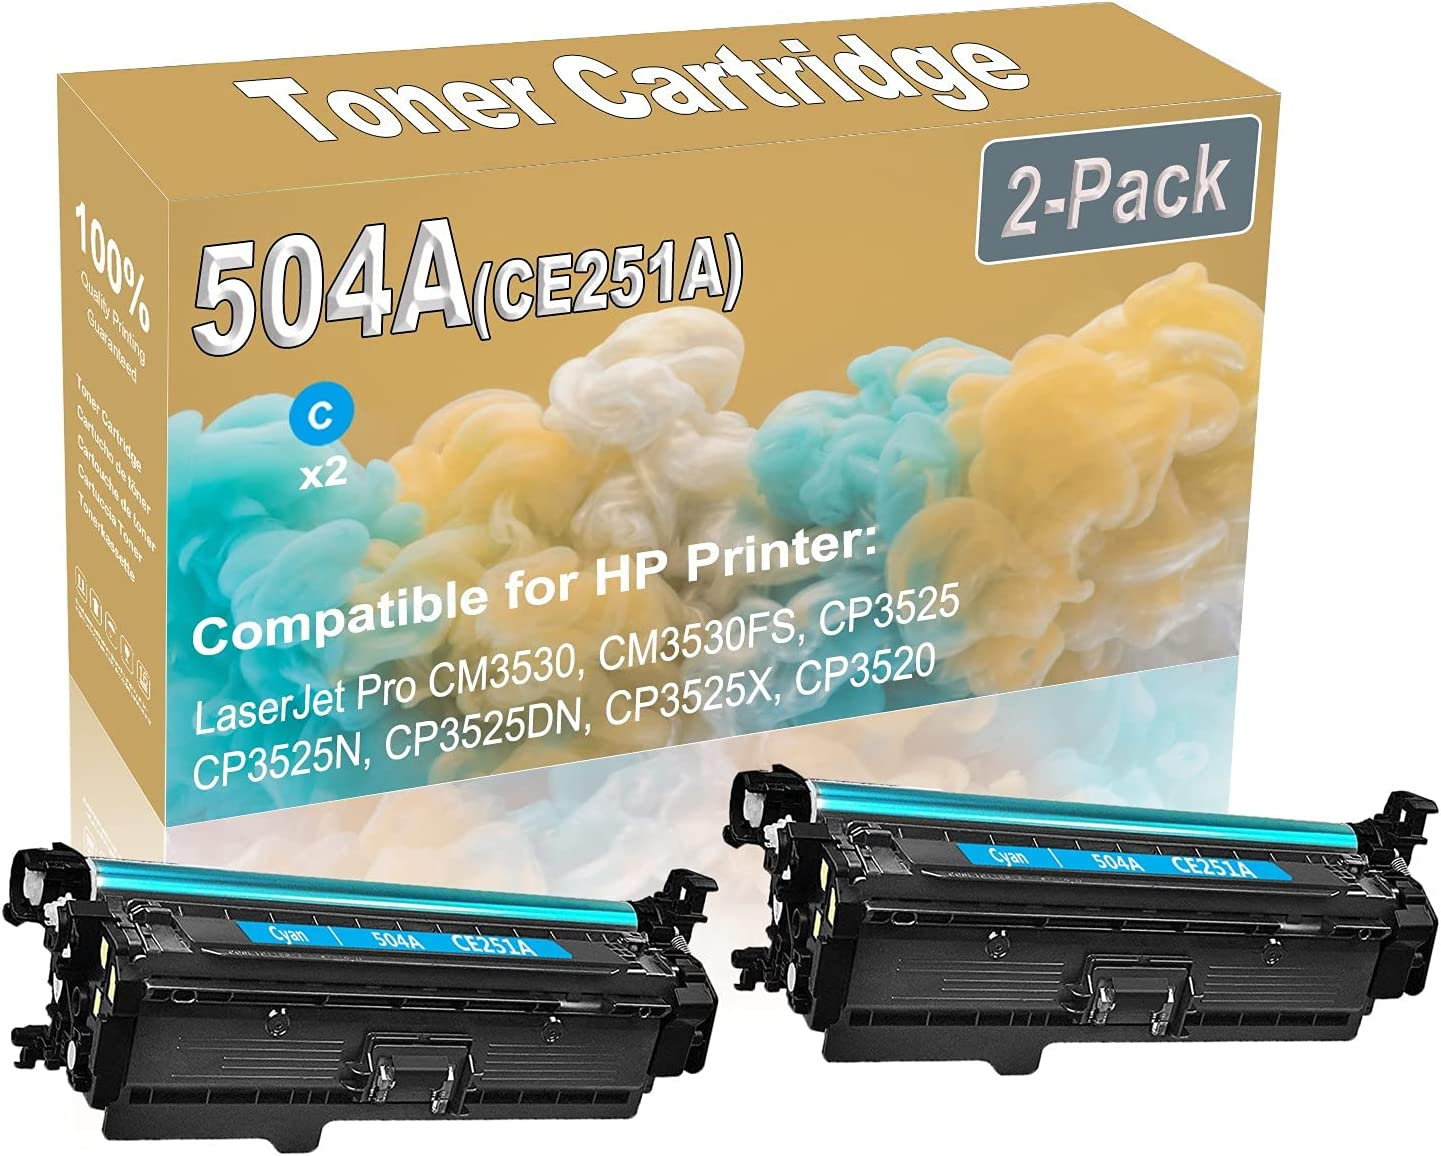 2-Pack (Cyan) Compatible CM3530 CM3530FS Laser Toner Cartridge (High Capacity) Replacement for HP 504A (CE251A) Printer Toner Cartridge